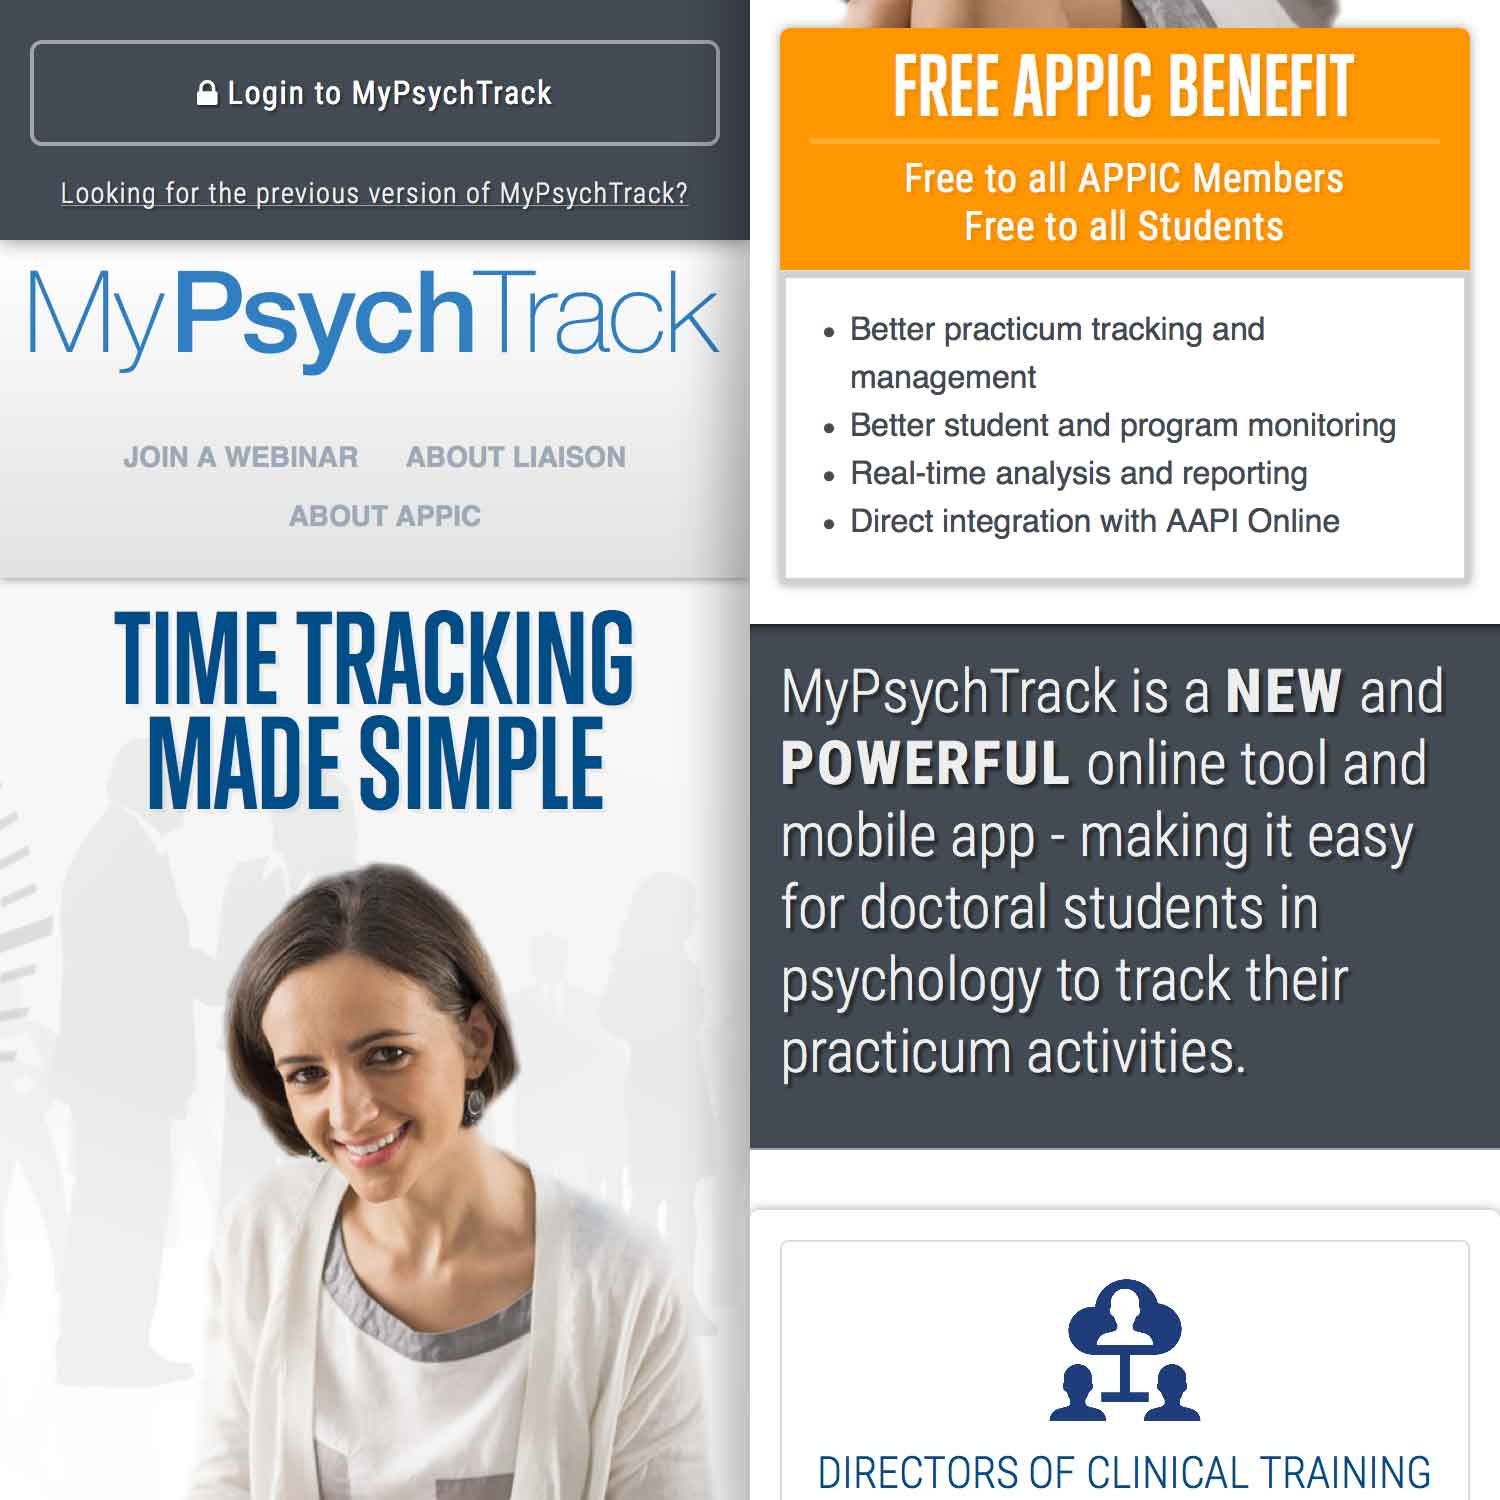 a screenshot showing two mobile layouts side-by-side of the MyPsychTrack marketing website